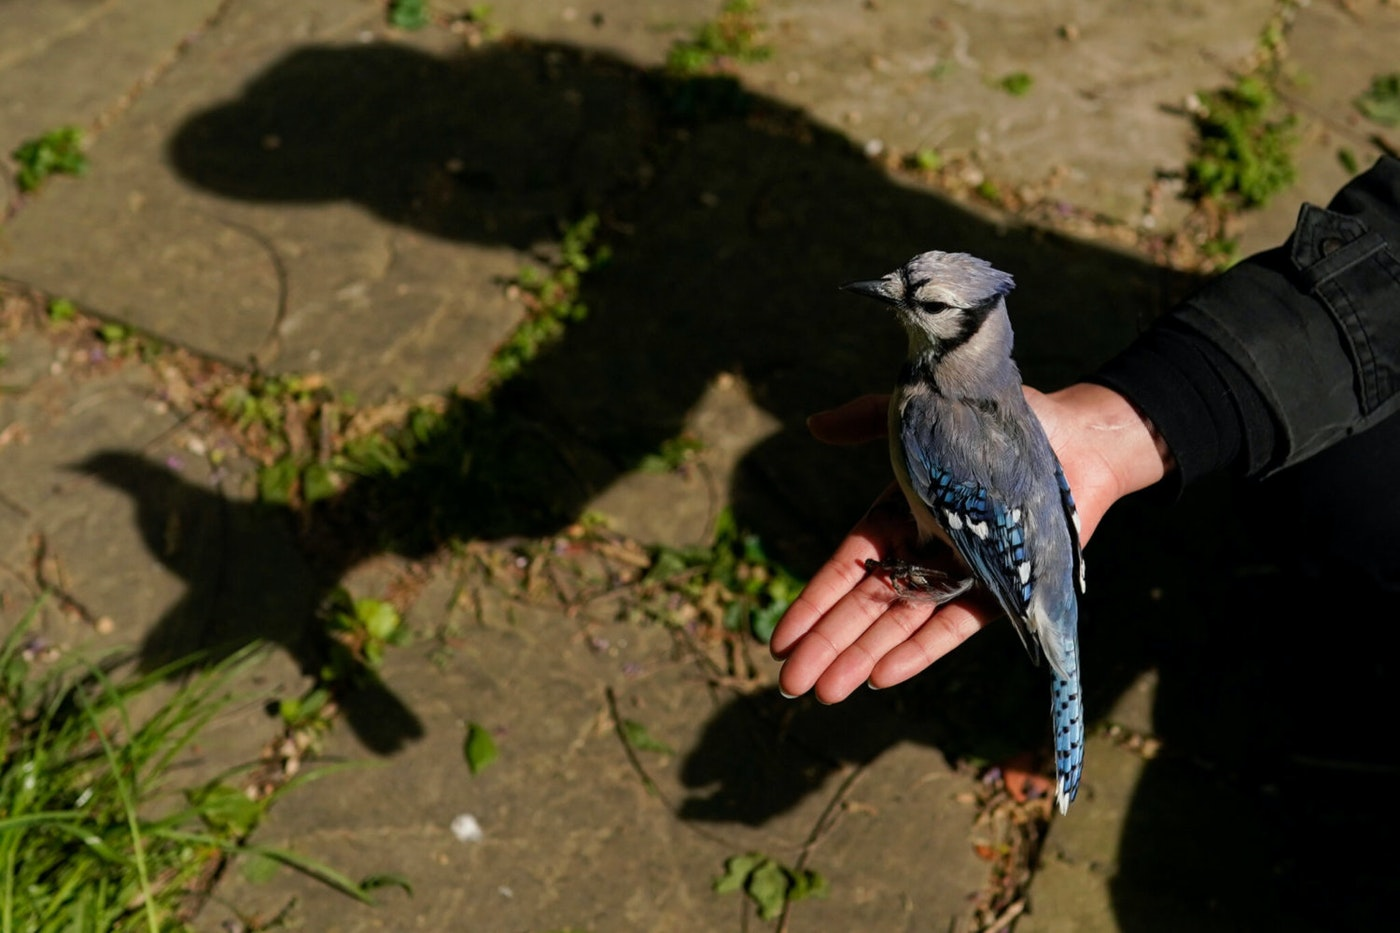 A university graduate student holds a female blue jay in her open hand to release it in Silver Spring, Md., after removing it from a mist net used to capture birds for banding or other research projects. A mysterious ailment has sickened and killed thousands of songbirds in several mid-Atlantic states since late spring. (AP File Photo/Carolyn Kaster)